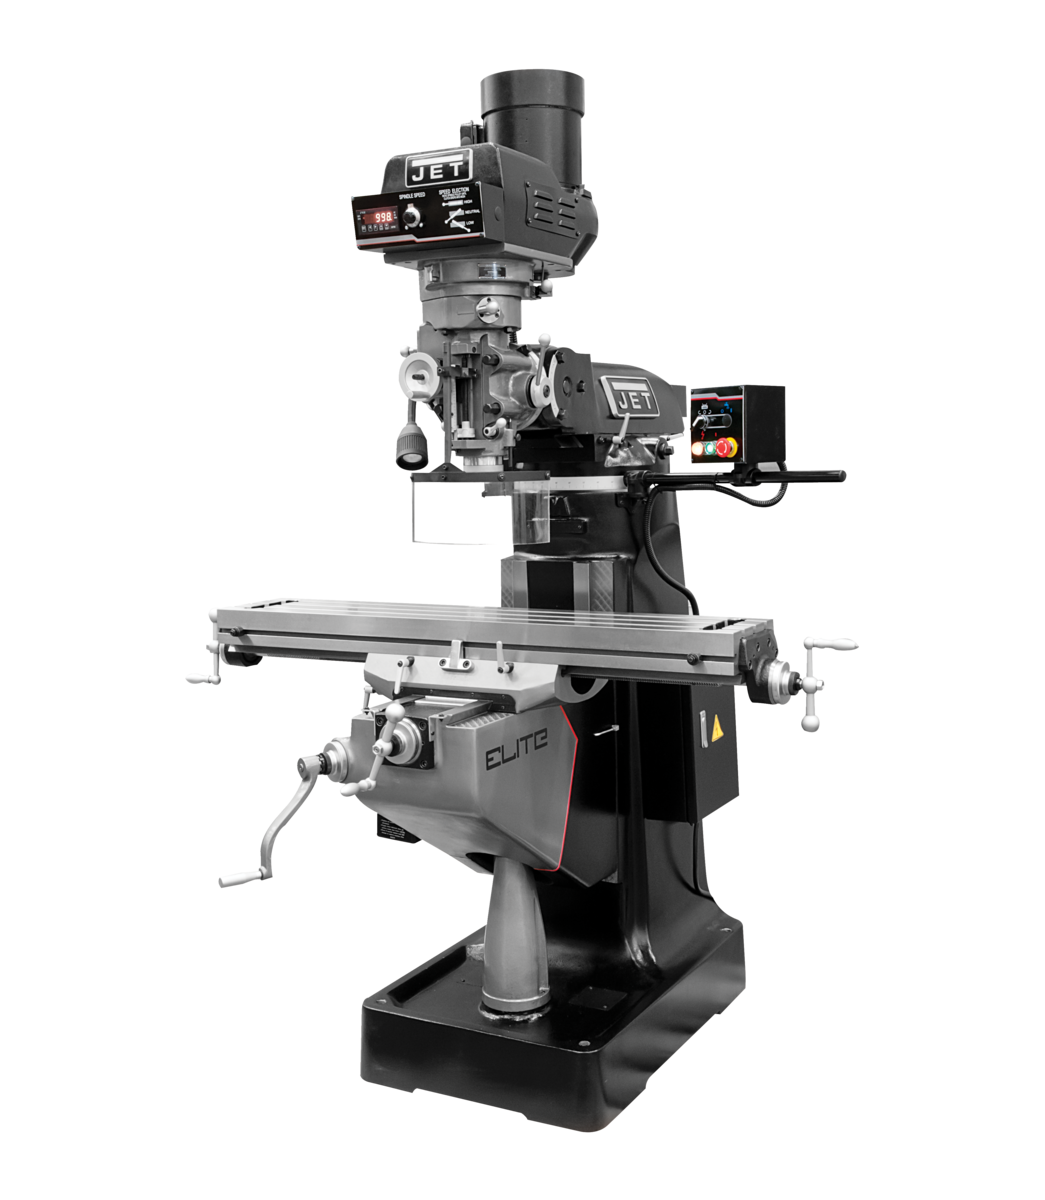 EVS-949 Mill with 3-Axis ACU-RITE 203 (Quill) DRO and Servo X-Axis Powerfeed